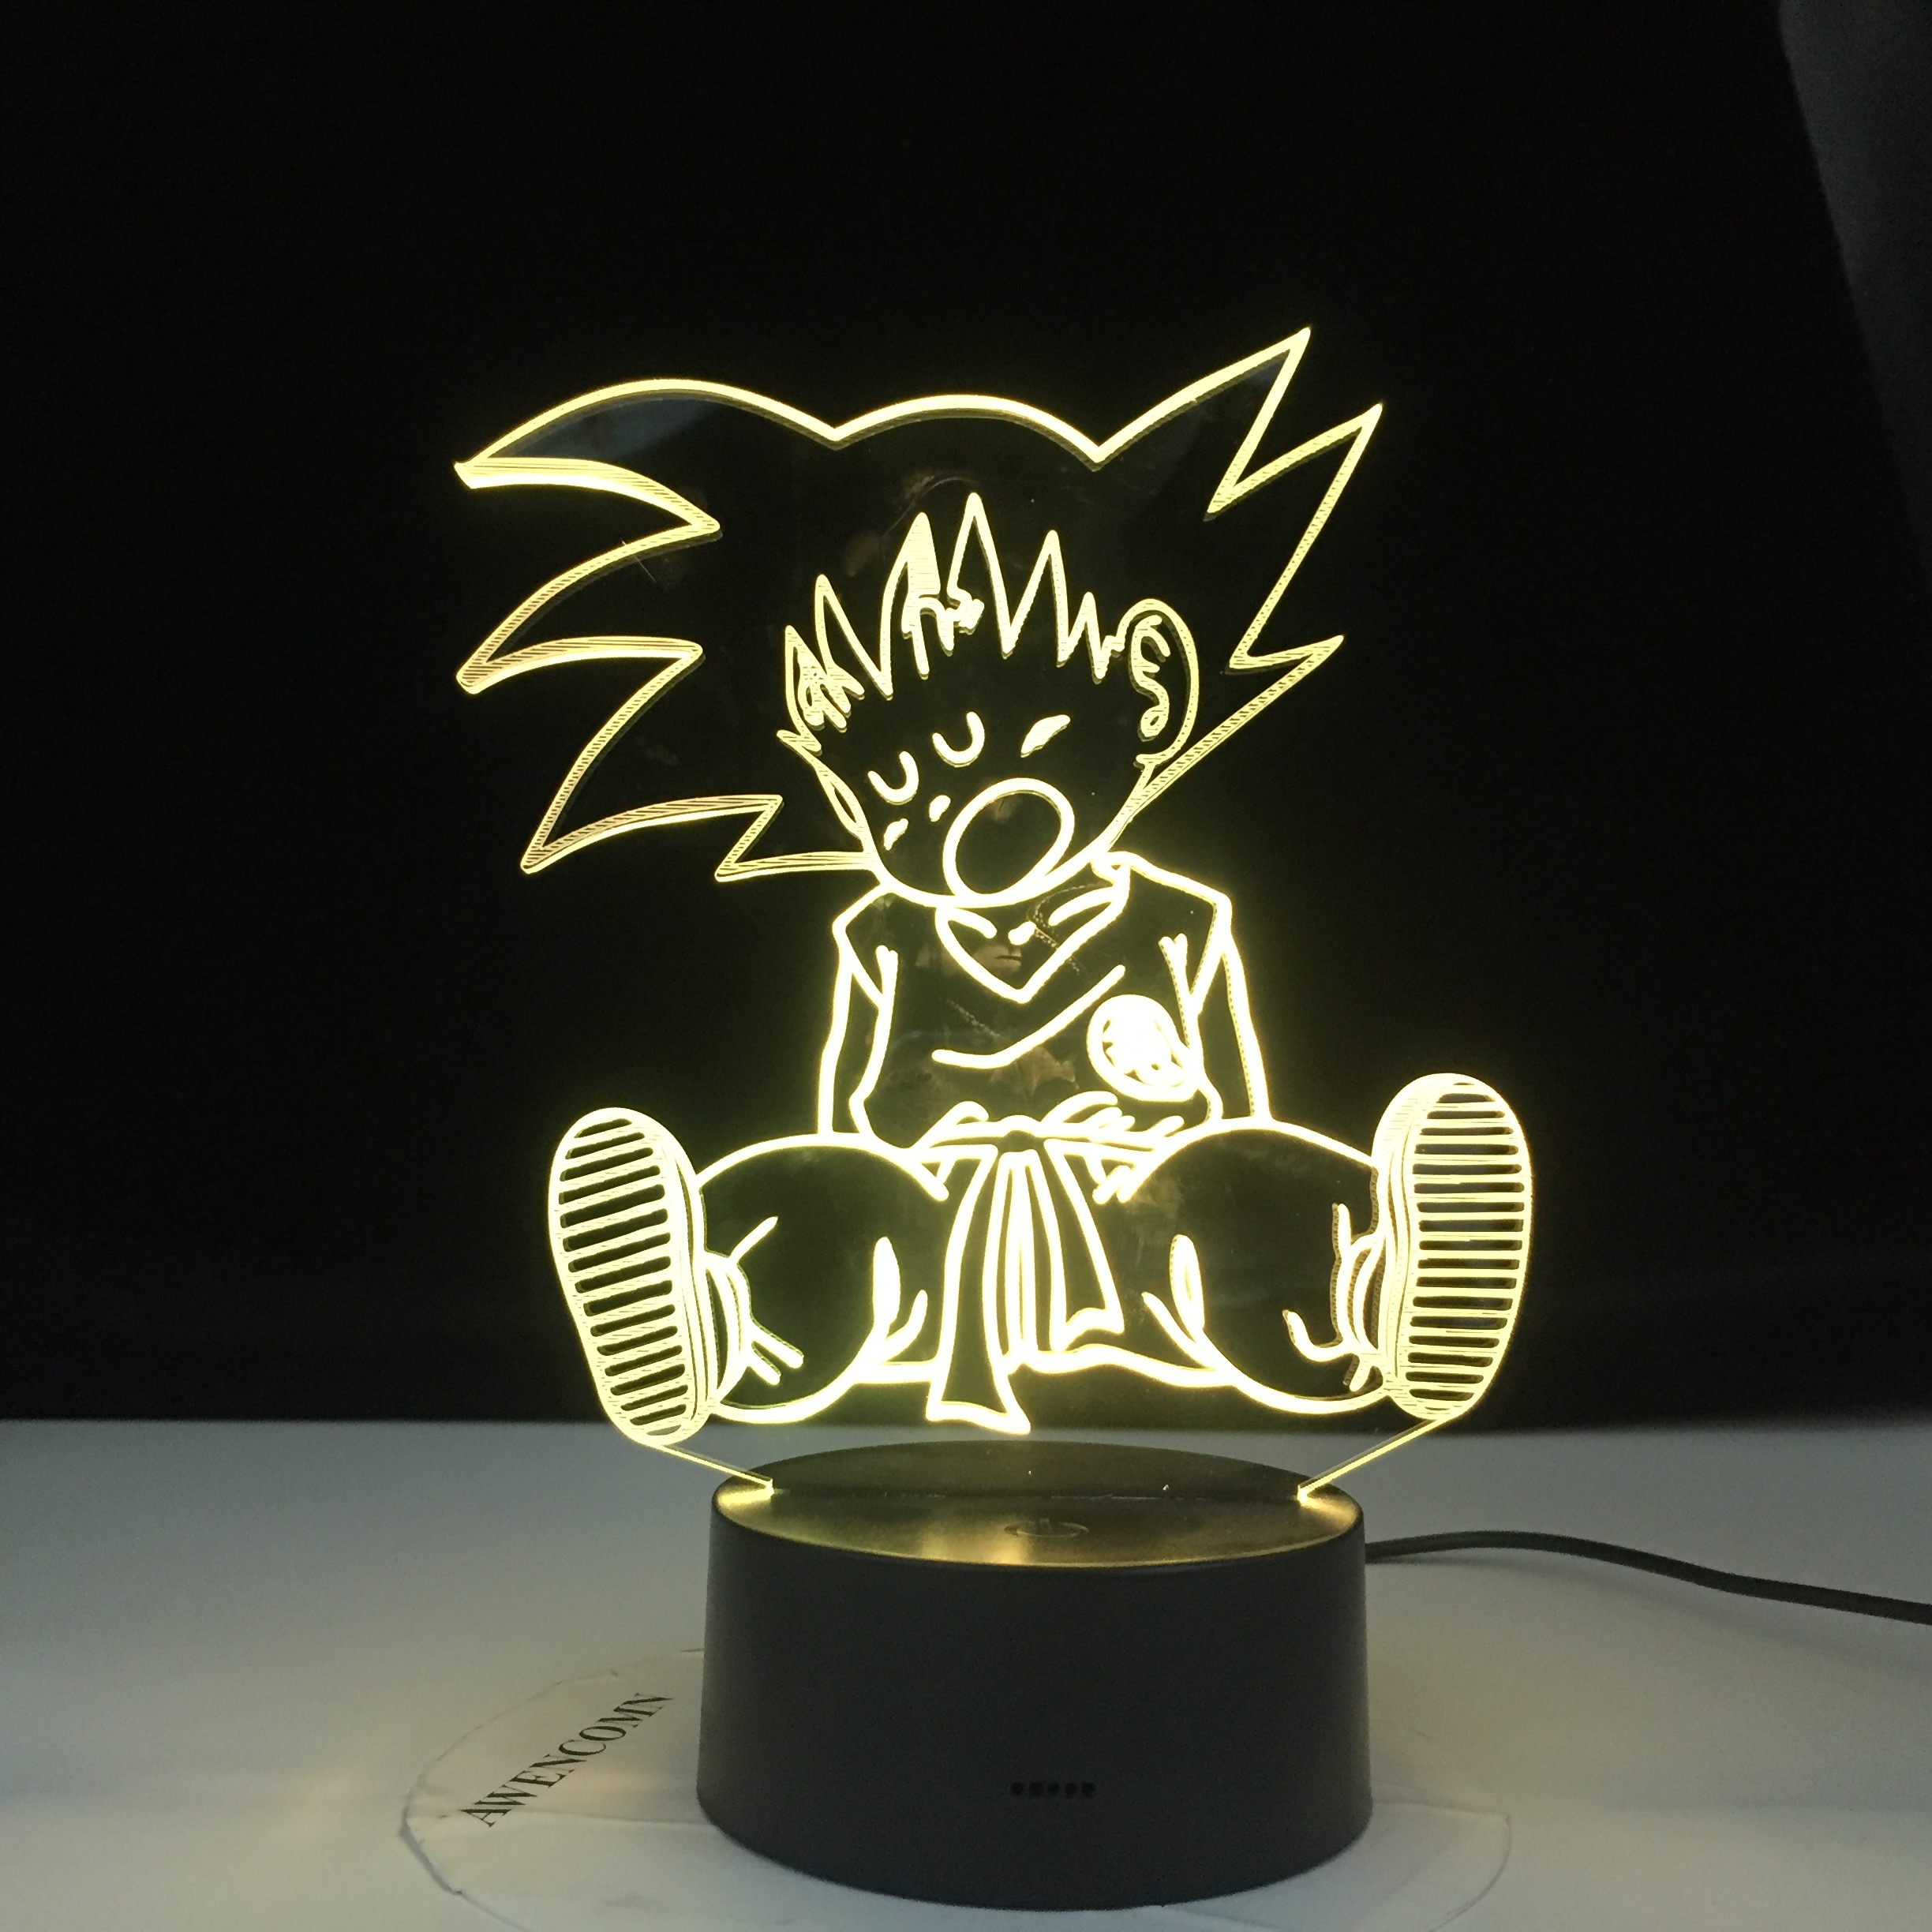 Baby Goku Sleep Figure Night Light for Bedroom Decoration 16 Colors Changing Usb Table 3d <font><b>Lamp</b></font> <font><b>Dragon</b></font> <font><b>Ball</b></font> Led Night Light Gift image